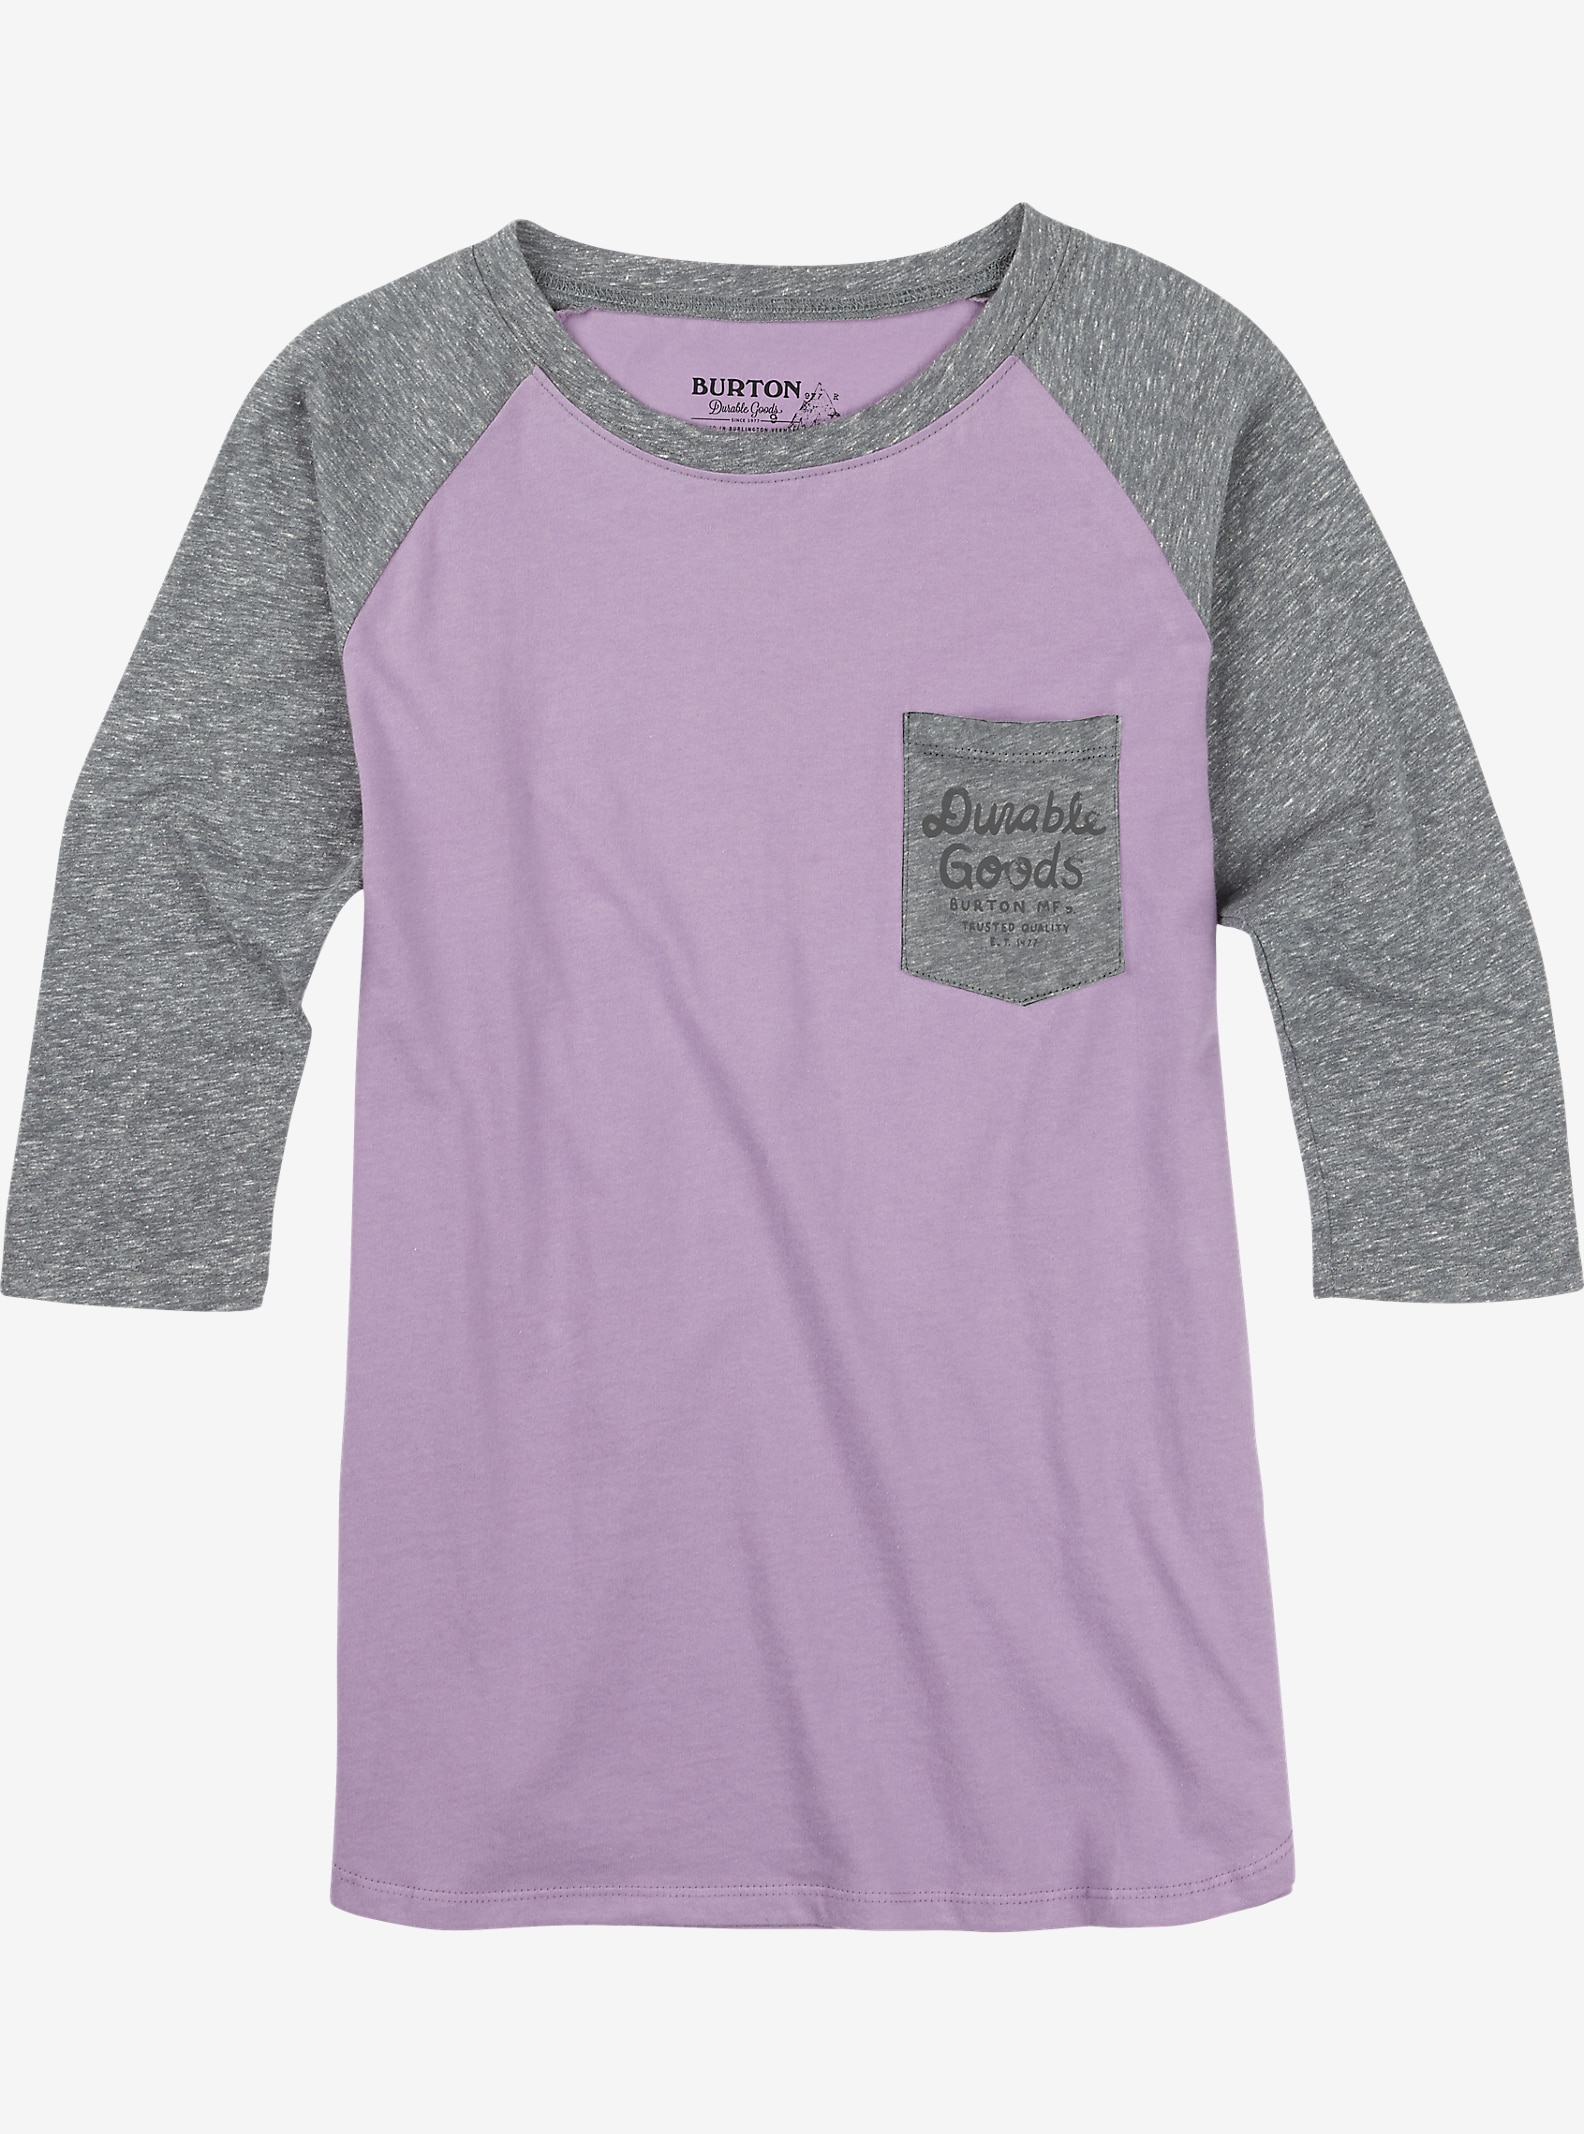 Burton Trusted T-Shirt mit Raglanärmeln angezeigt in Dusty Grape